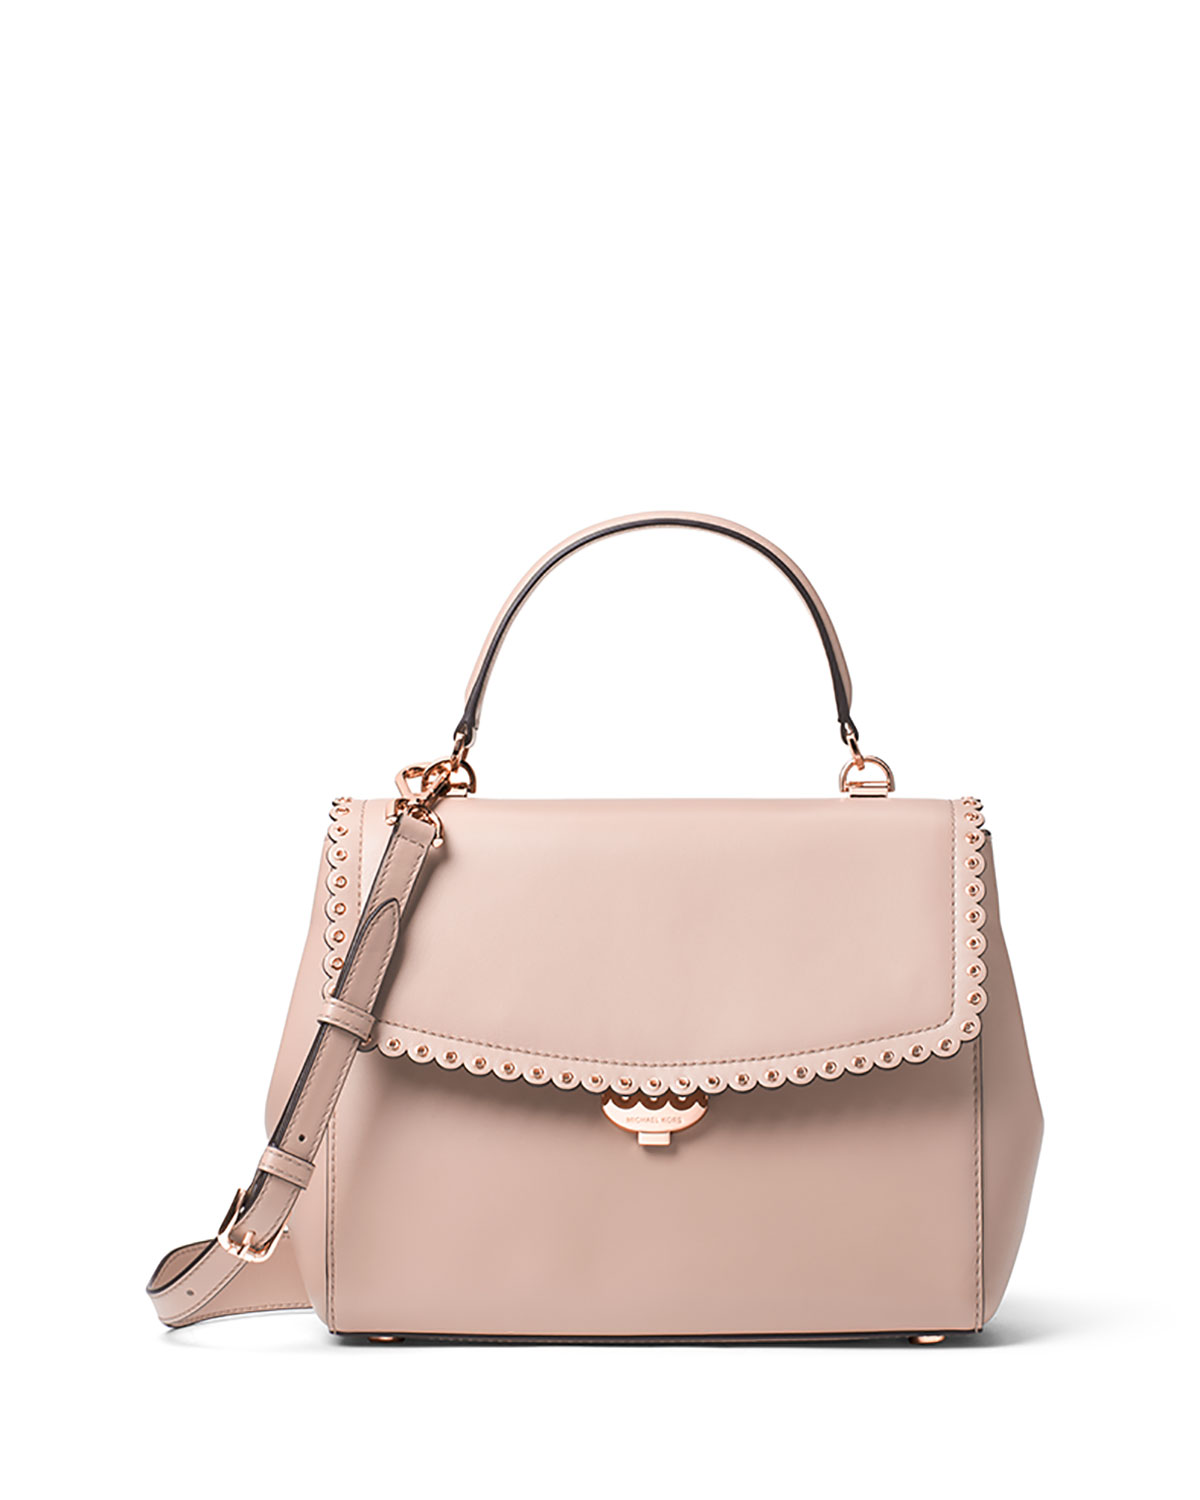 Michael Kors Ava Medium Saffiano Satchel Bag Light Pink Gold